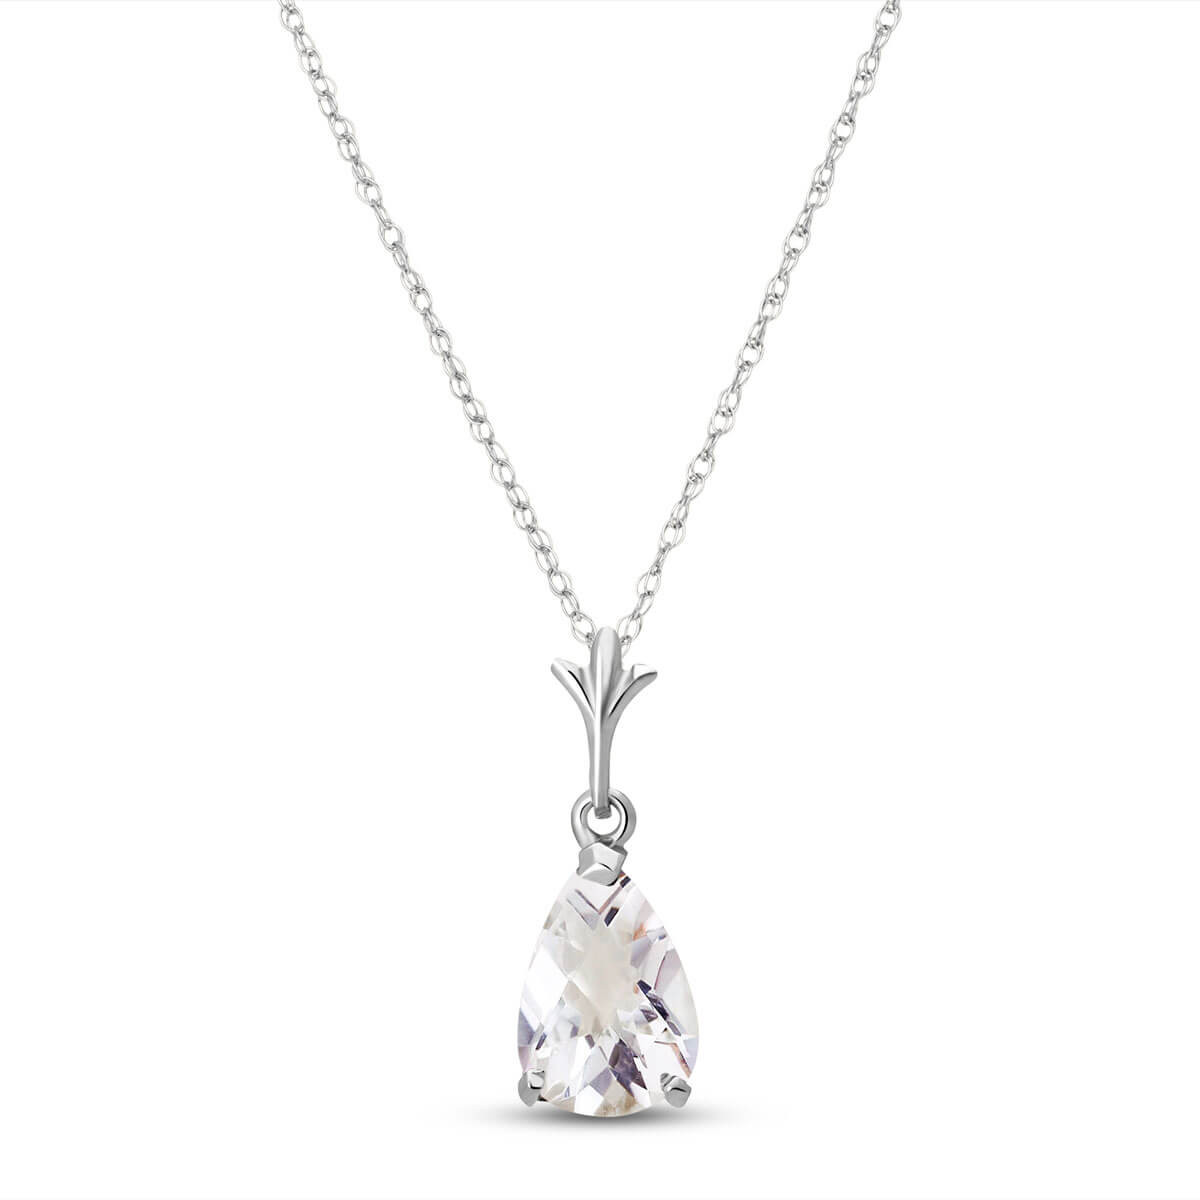 White Topaz Belle Pendant Necklace 1.5 ct in 9ct White Gold